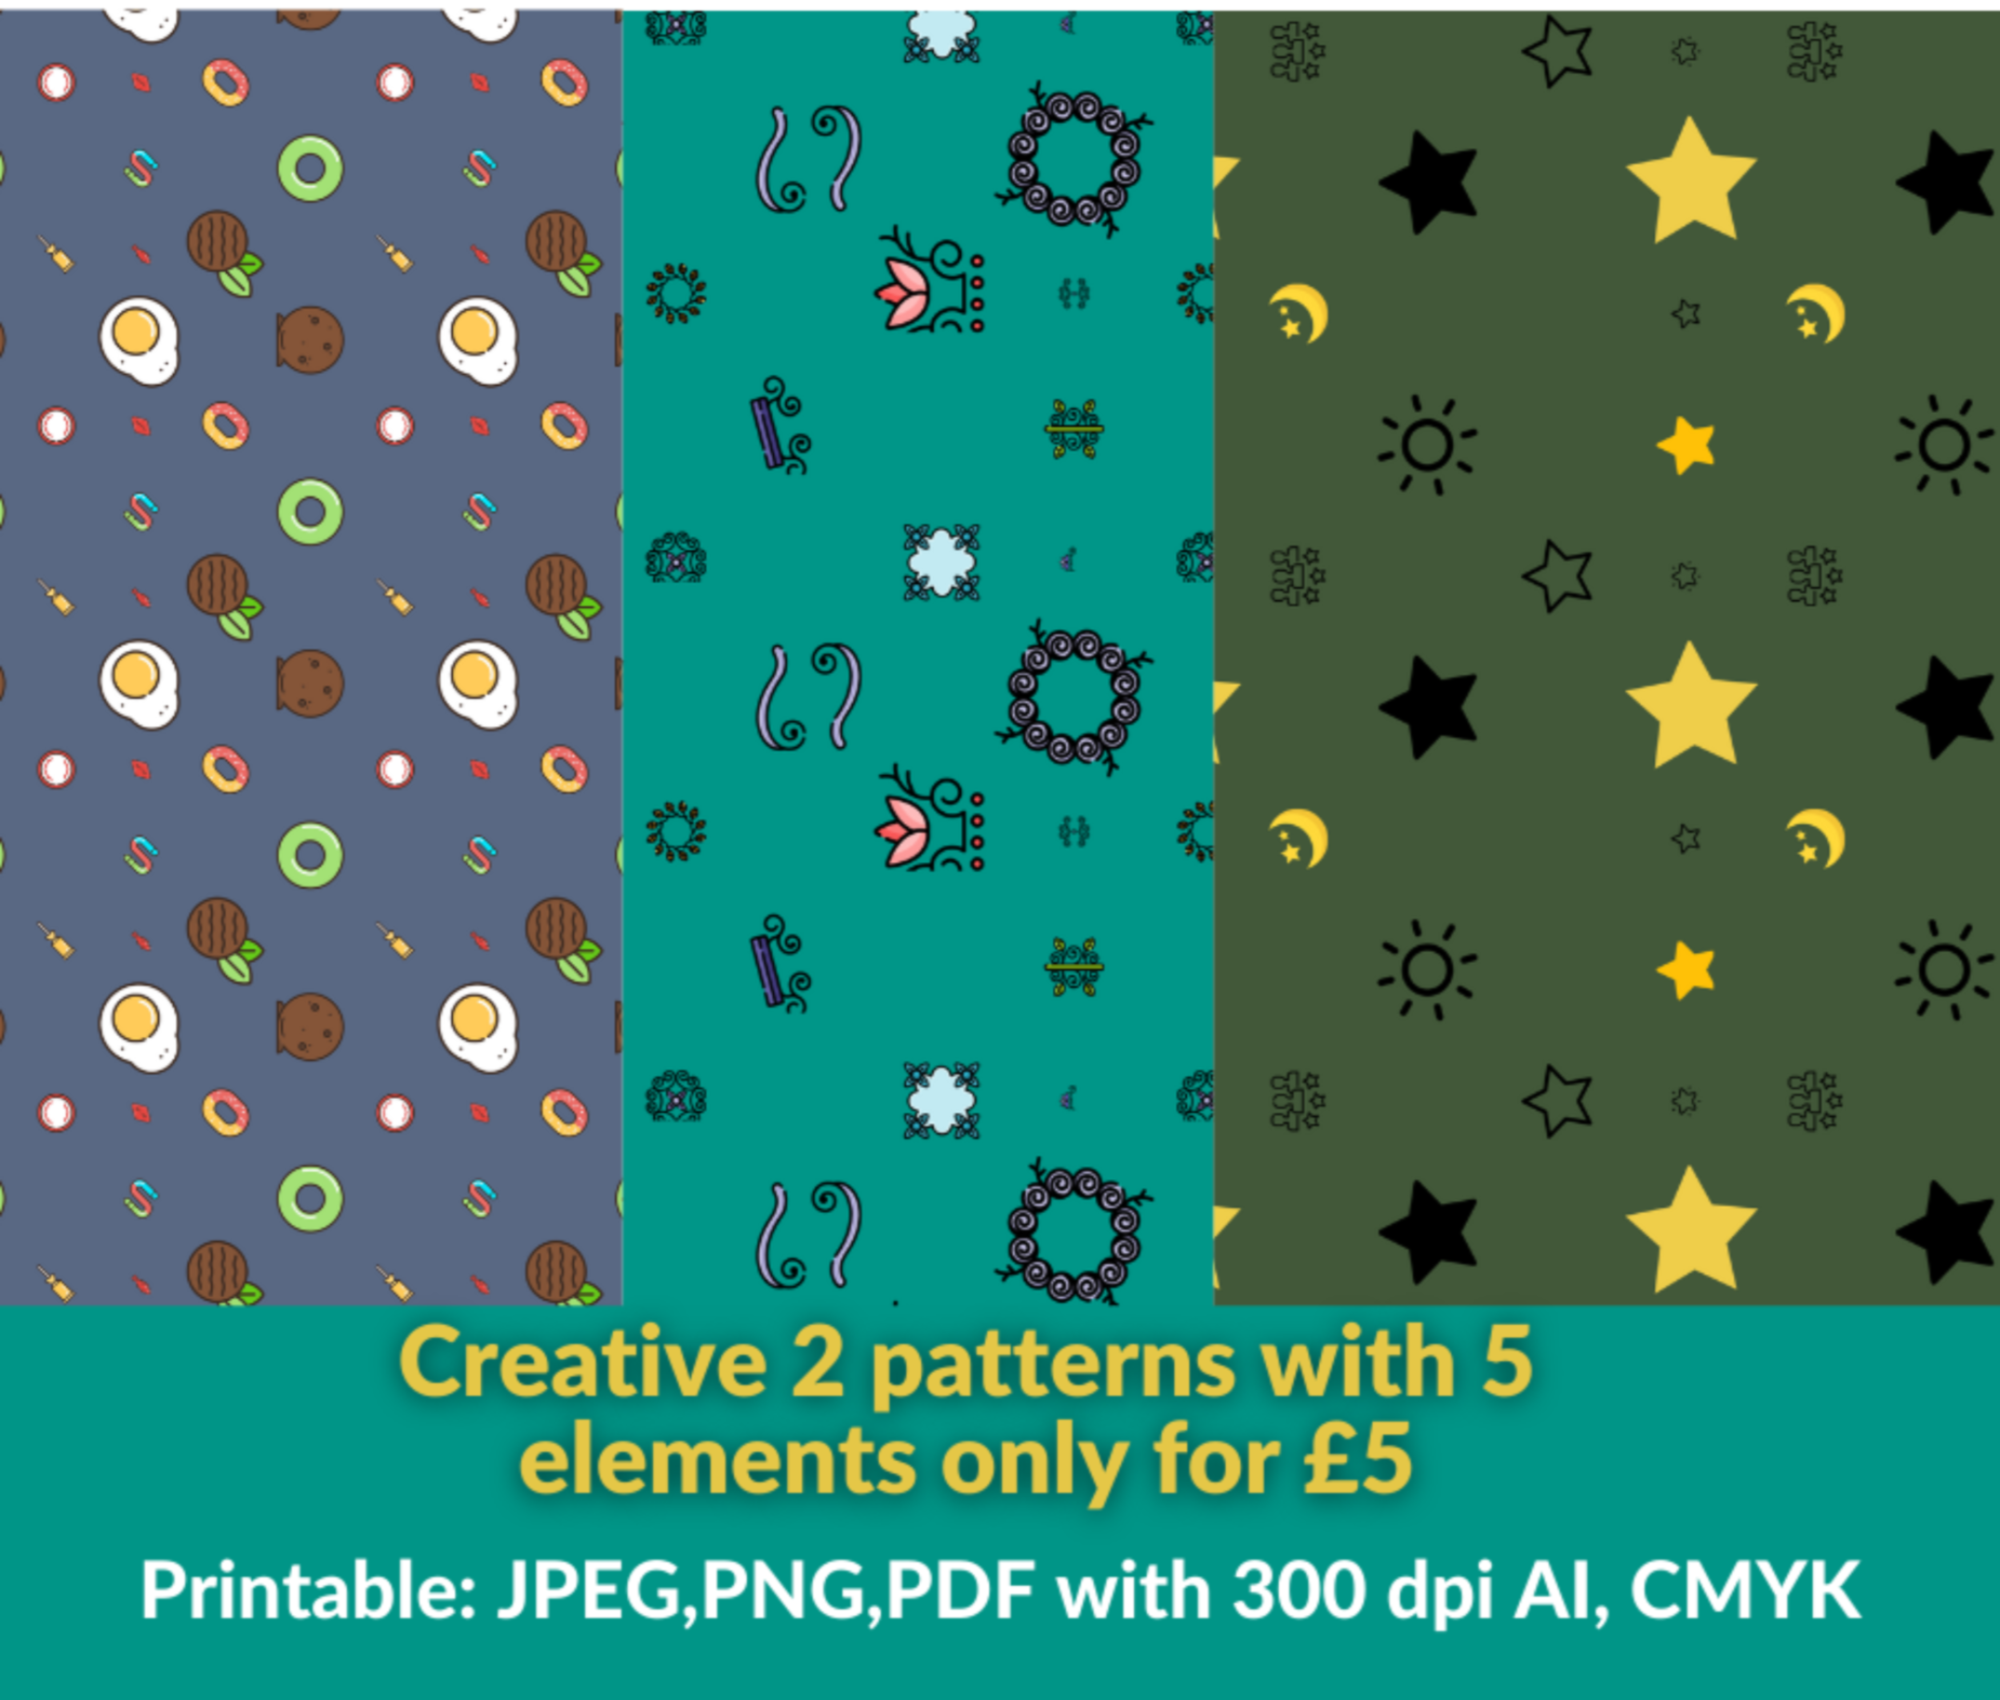 High quality & professional 2 pattern designs for print and web by best graphic designer